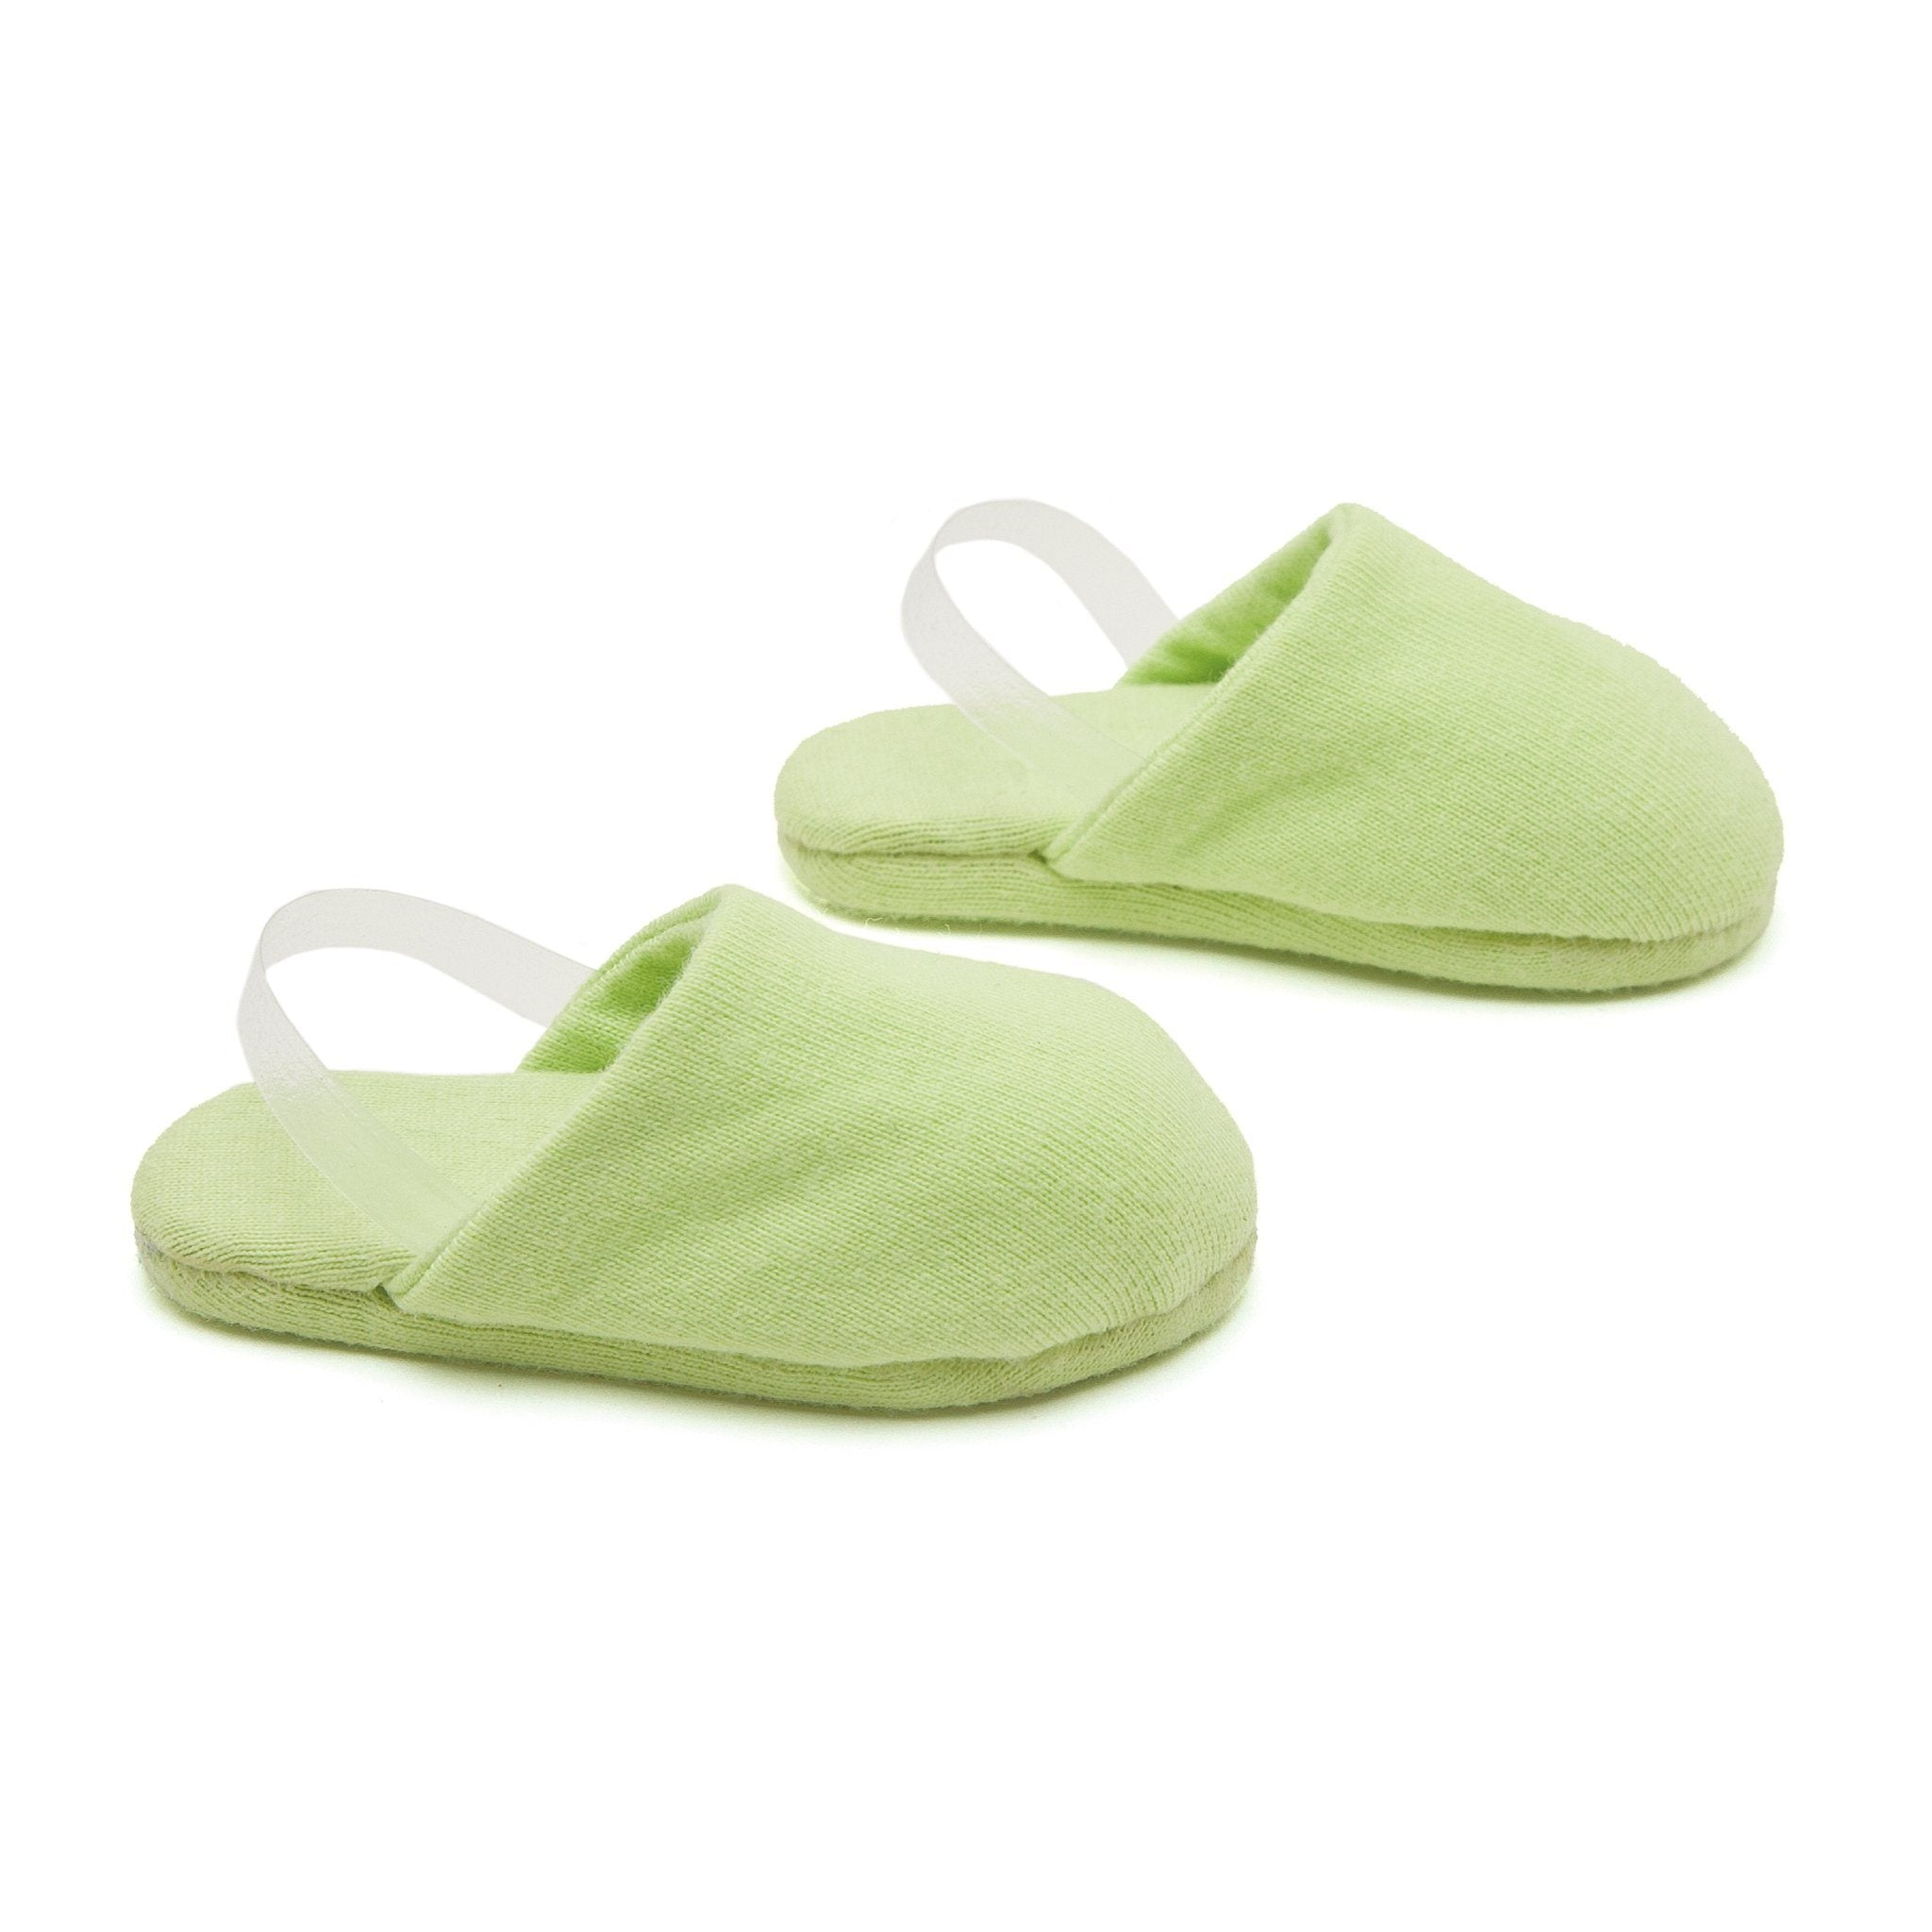 Night Owl Nightwear green soft slippers fit all 18 inch dolls.